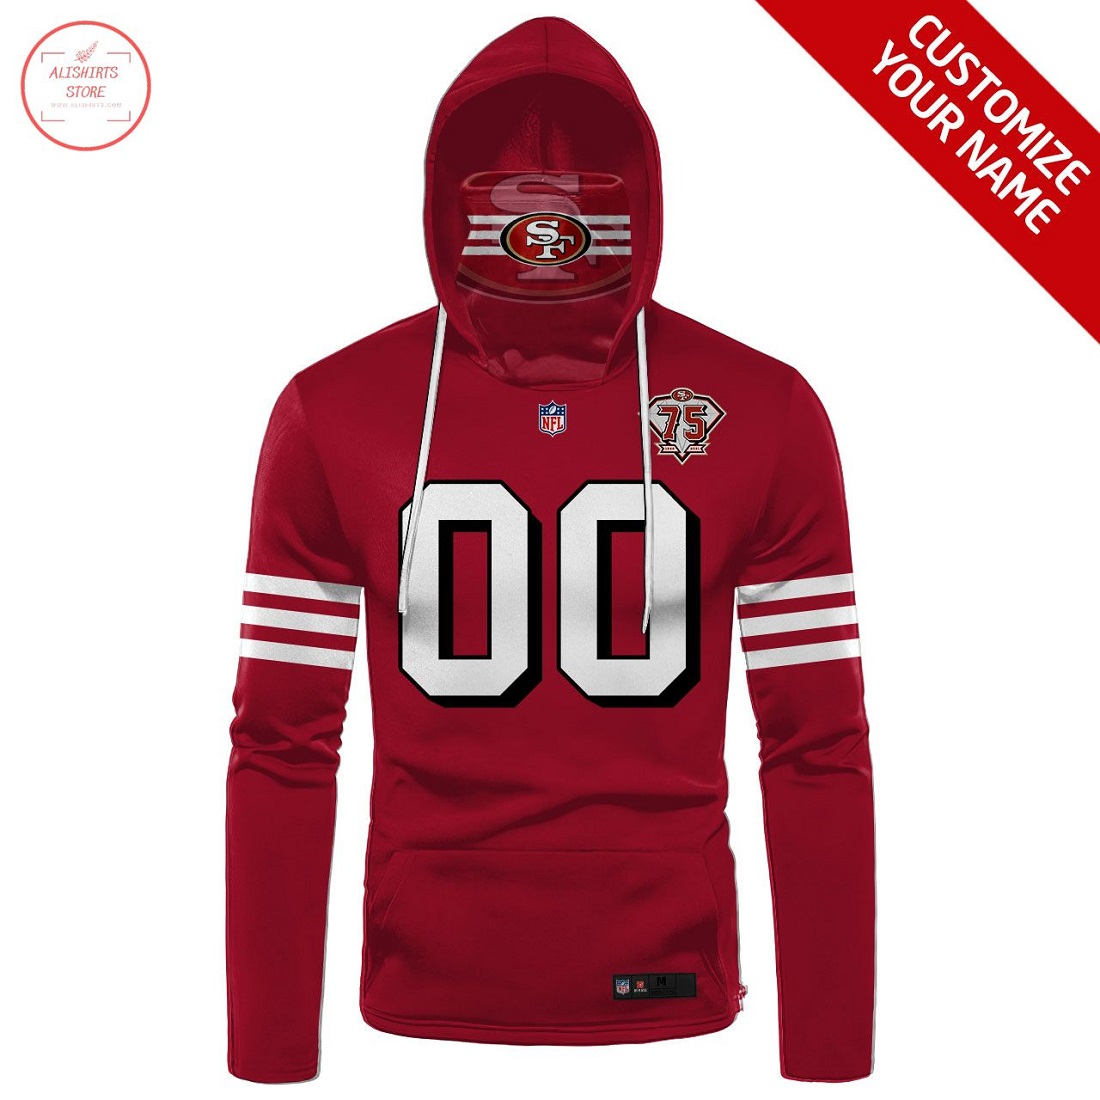 NFL San Francisco 49ers Personalized Gaiter Hoodie